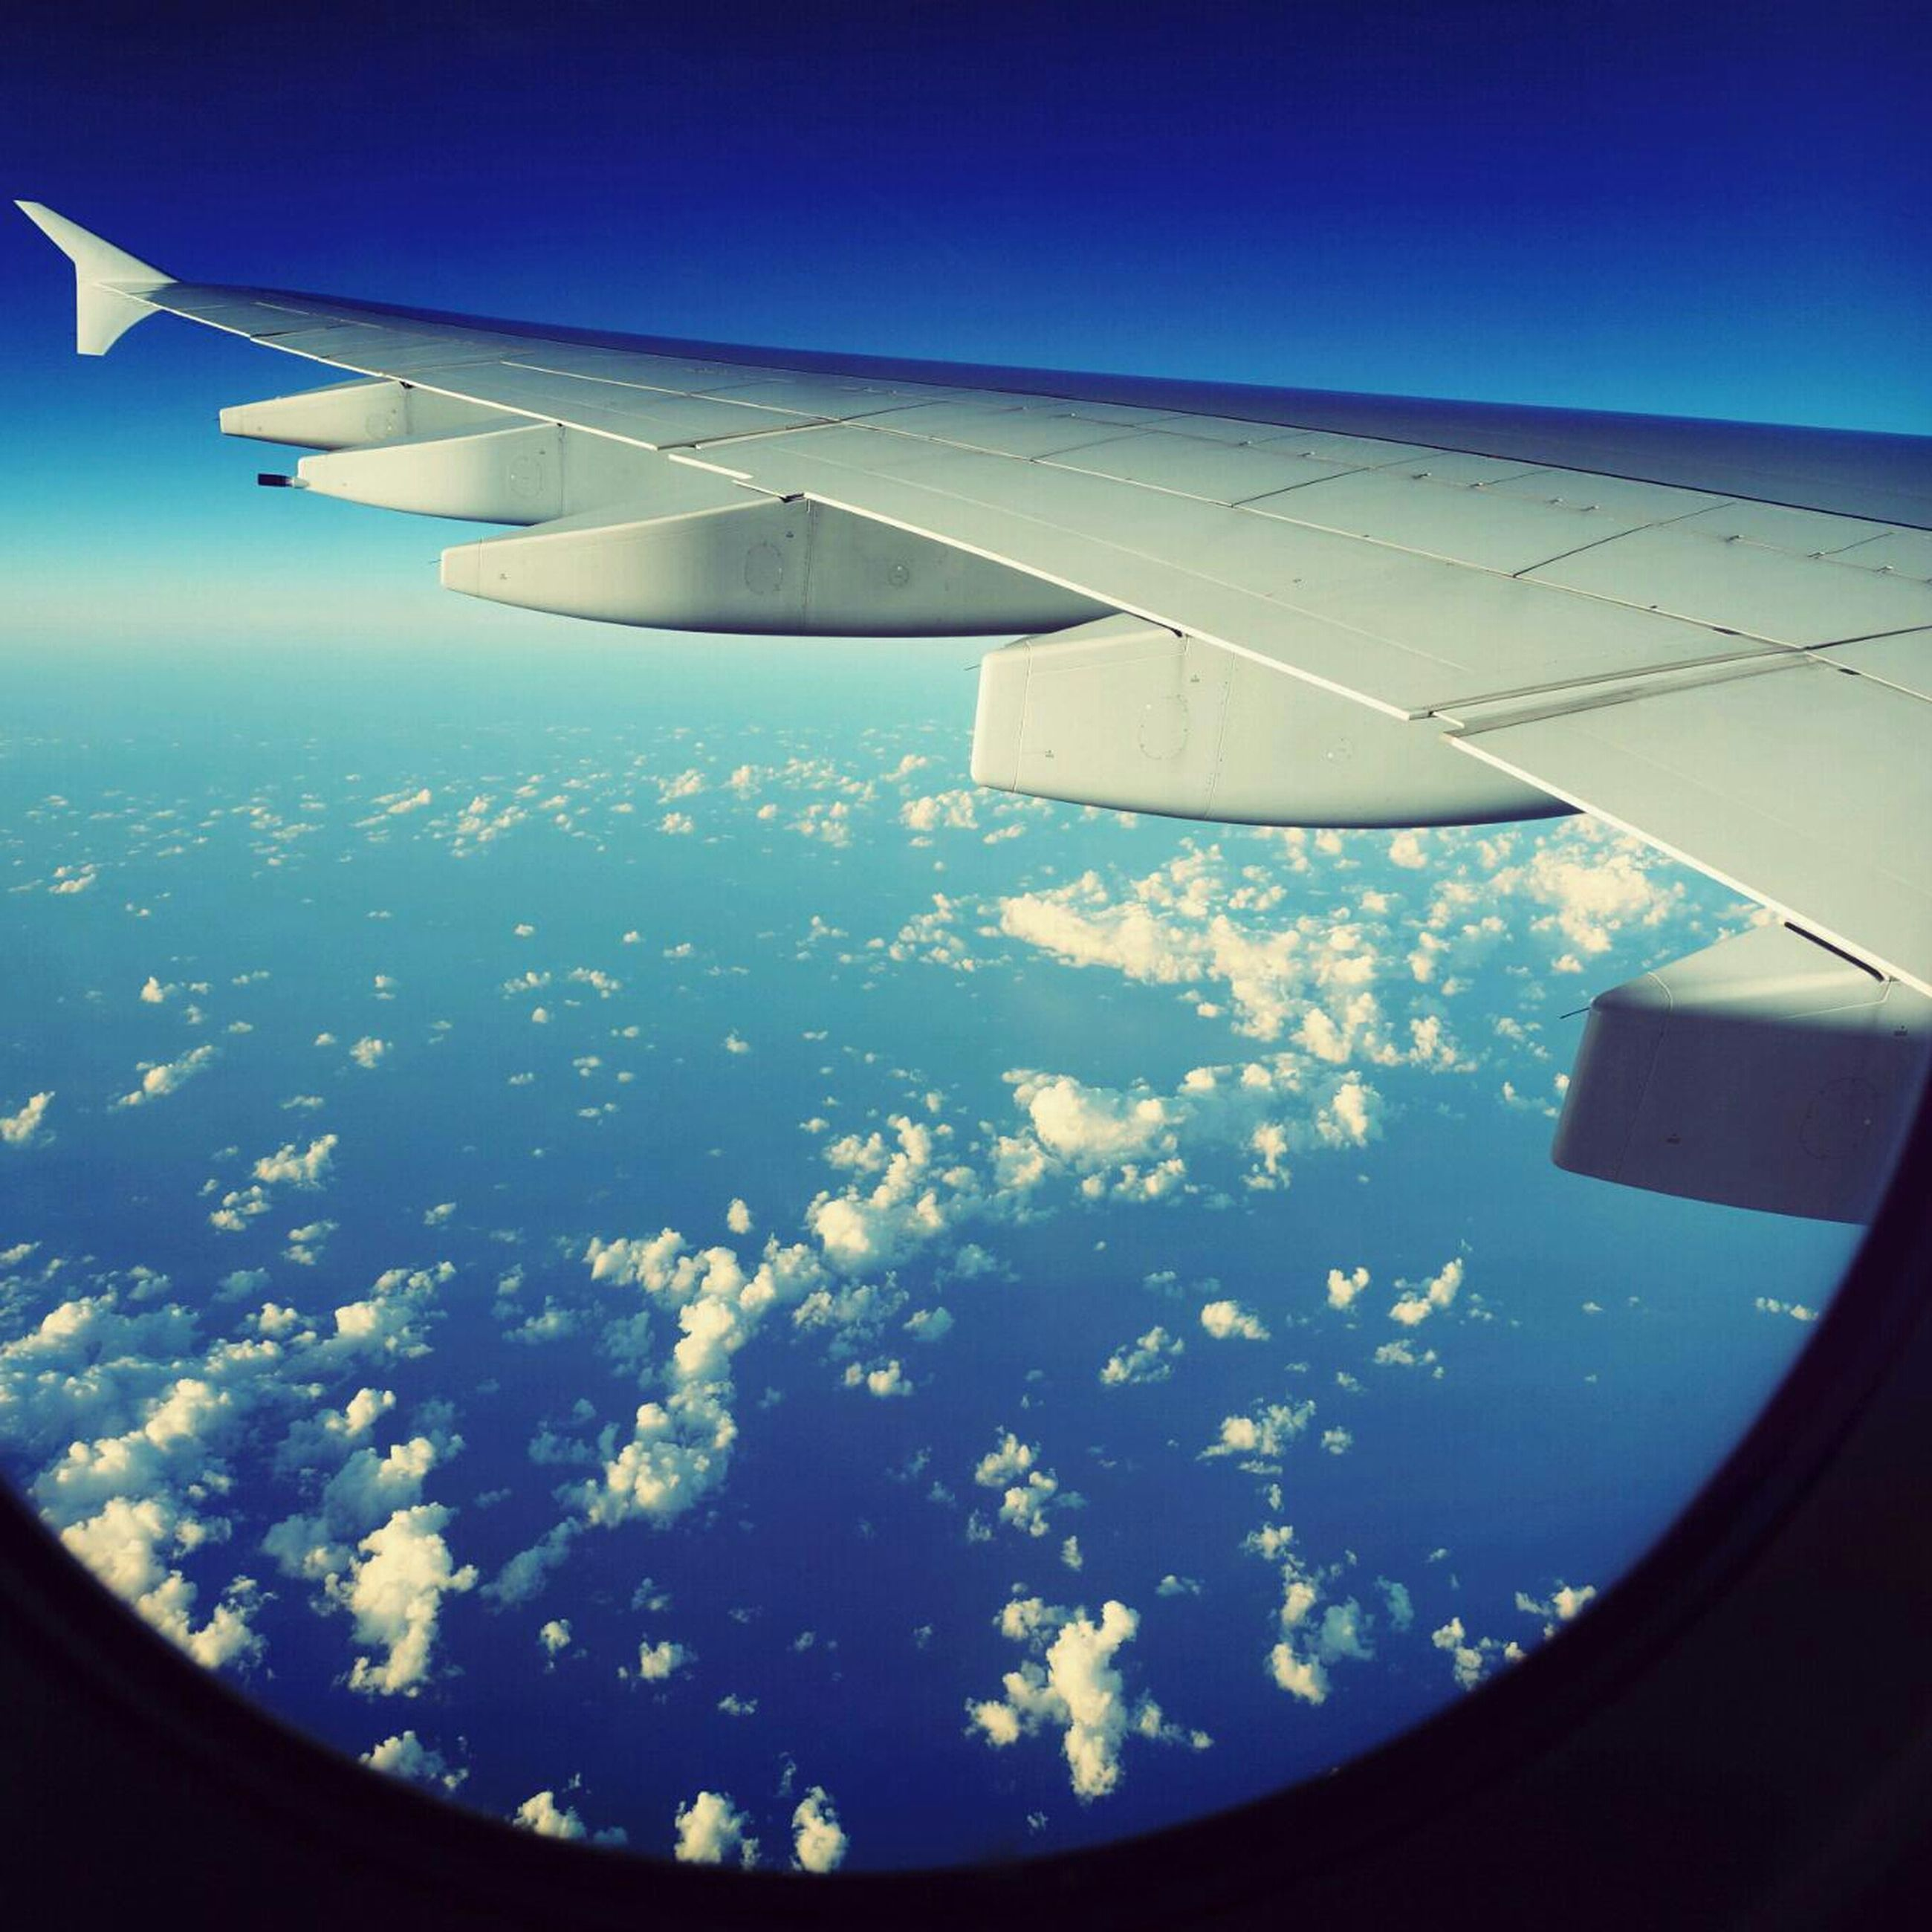 airplane, air vehicle, flying, aircraft wing, transportation, mode of transport, aerial view, part of, mid-air, cropped, sky, on the move, travel, journey, cloud - sky, public transportation, airplane wing, window, commercial airplane, aeroplane